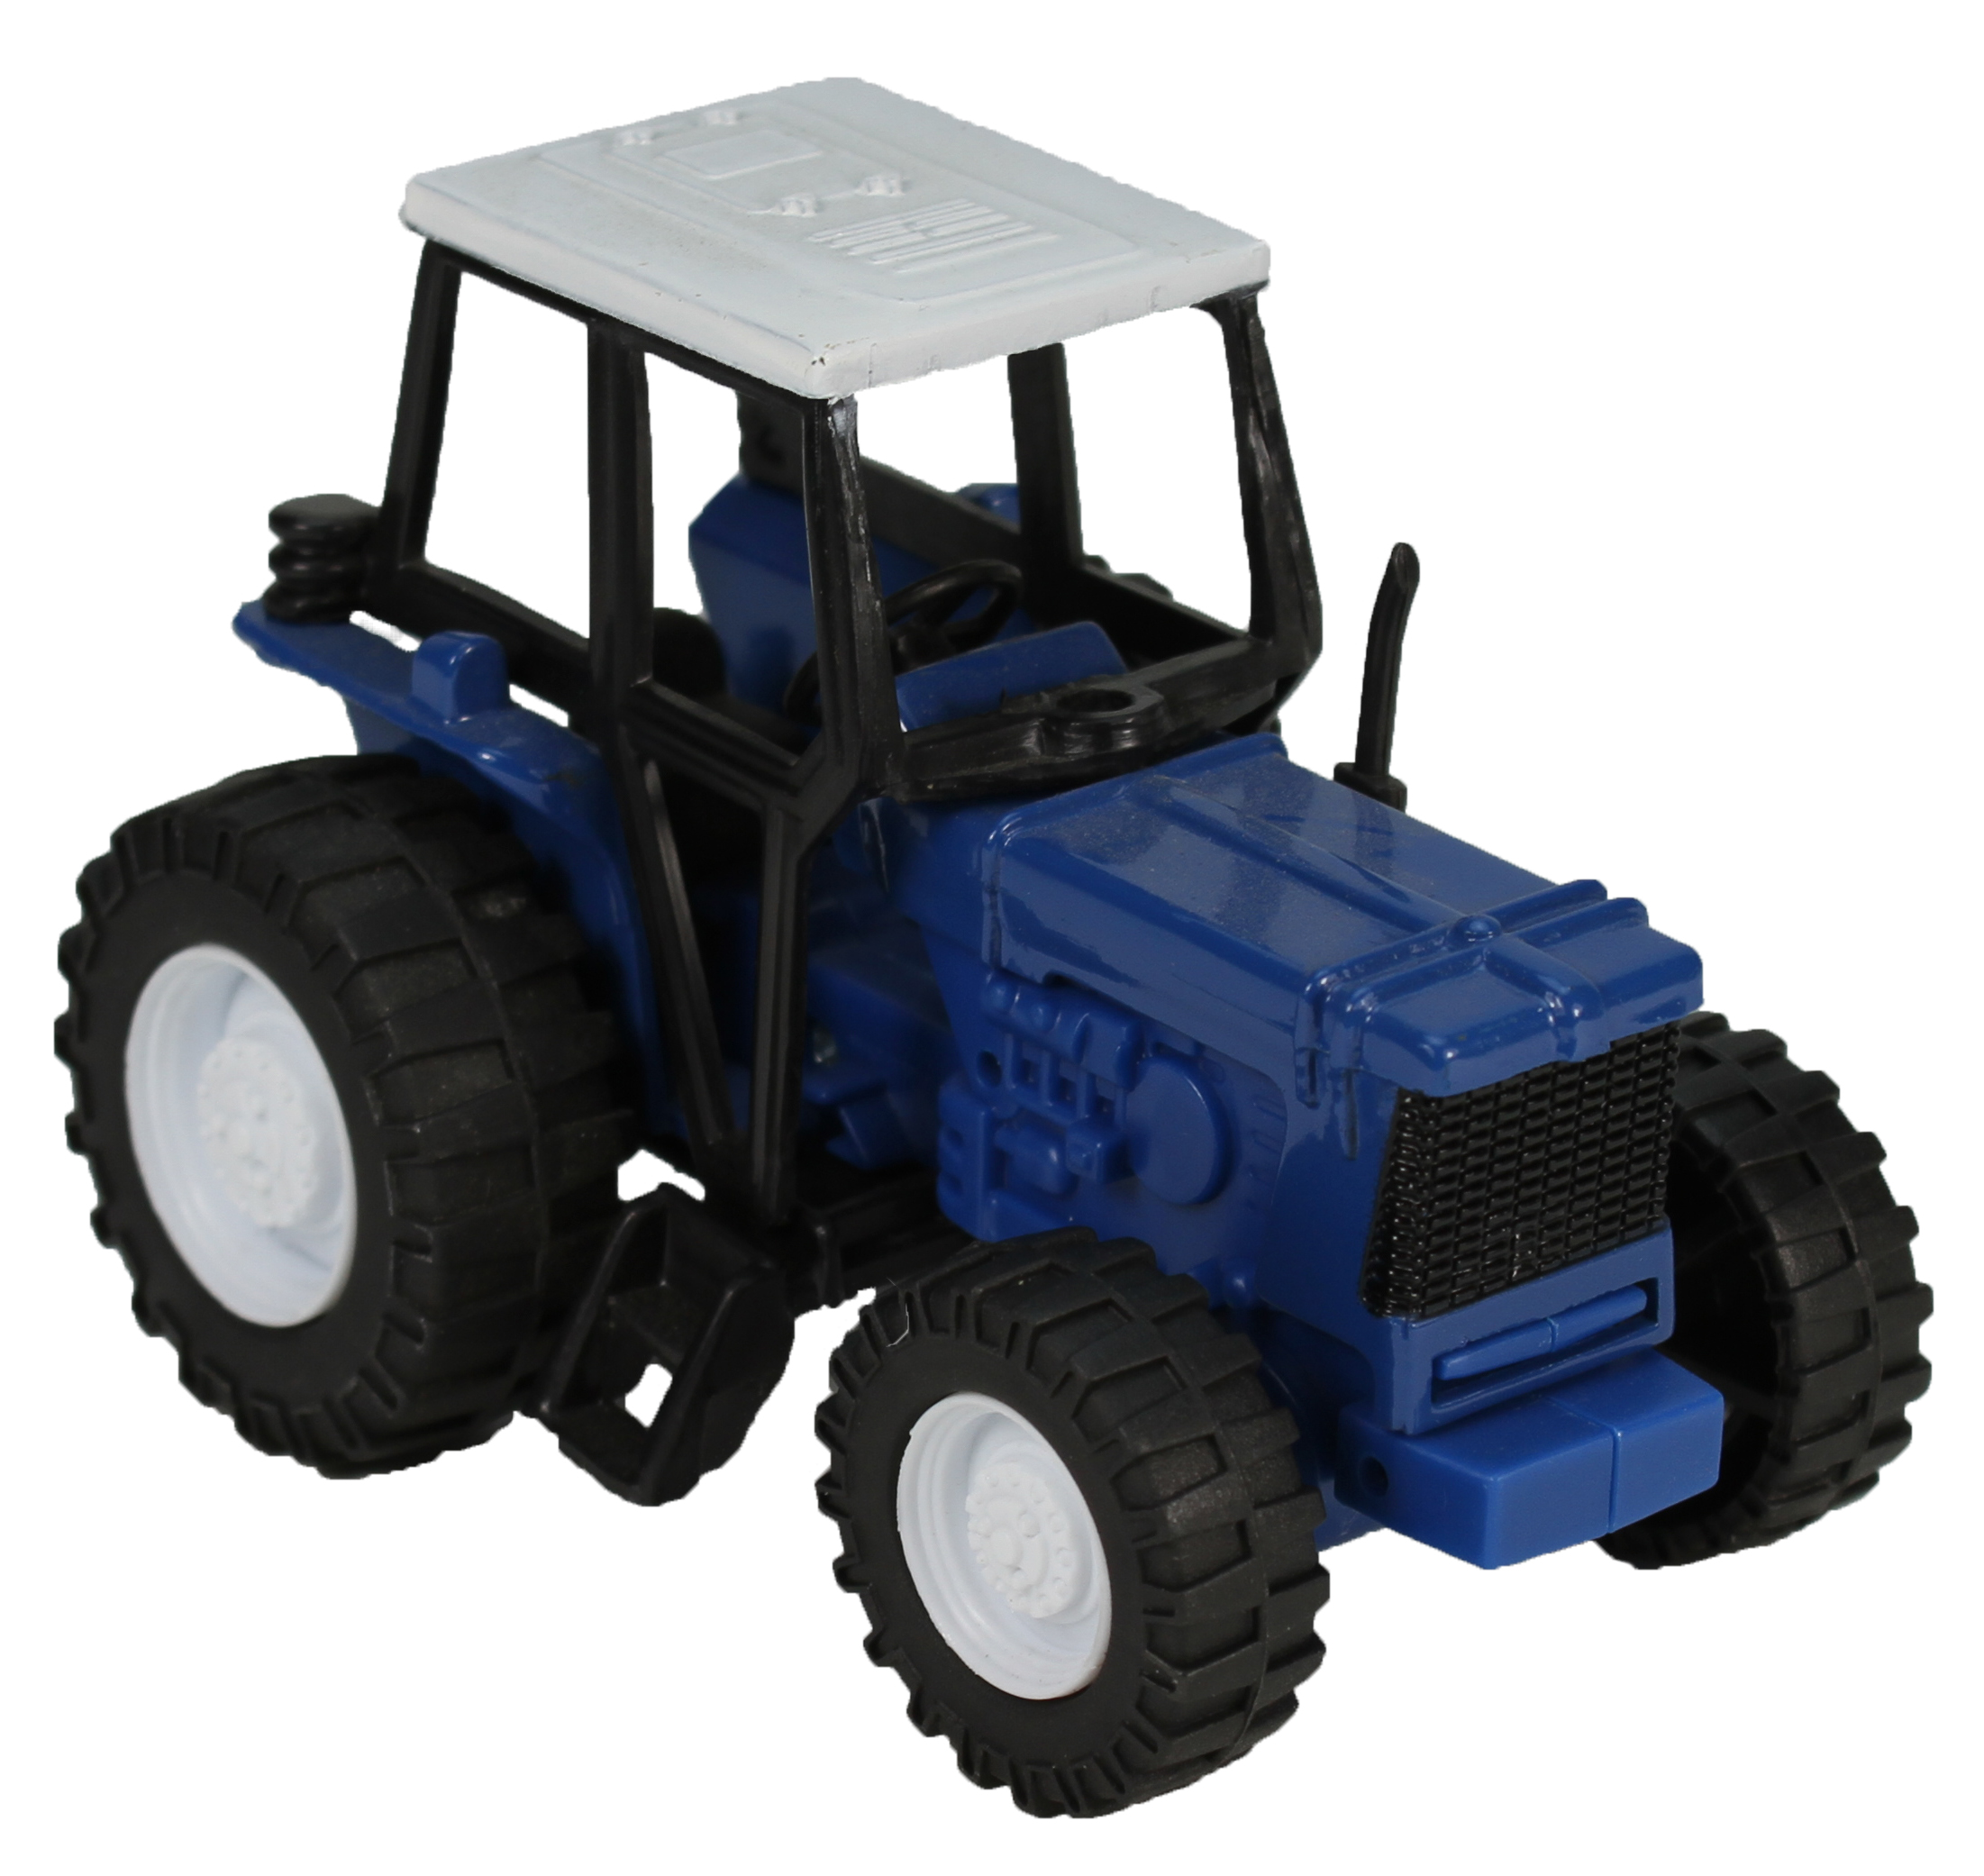 Blue Die-Cast Farm Tractor, 1:32 Scale by NewRay